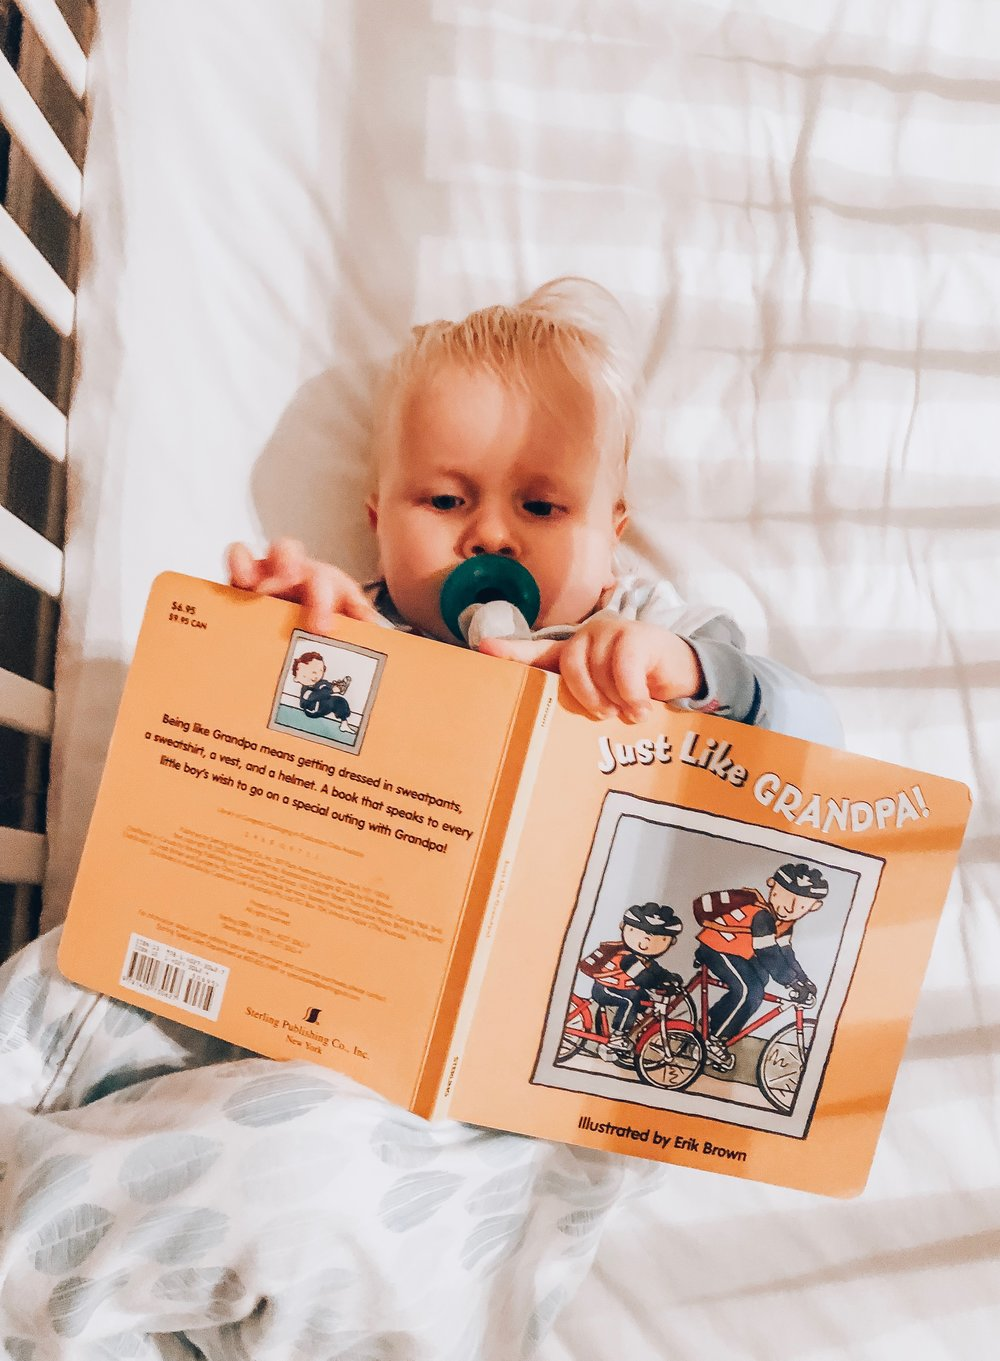 Bedtime stories are part of our routine